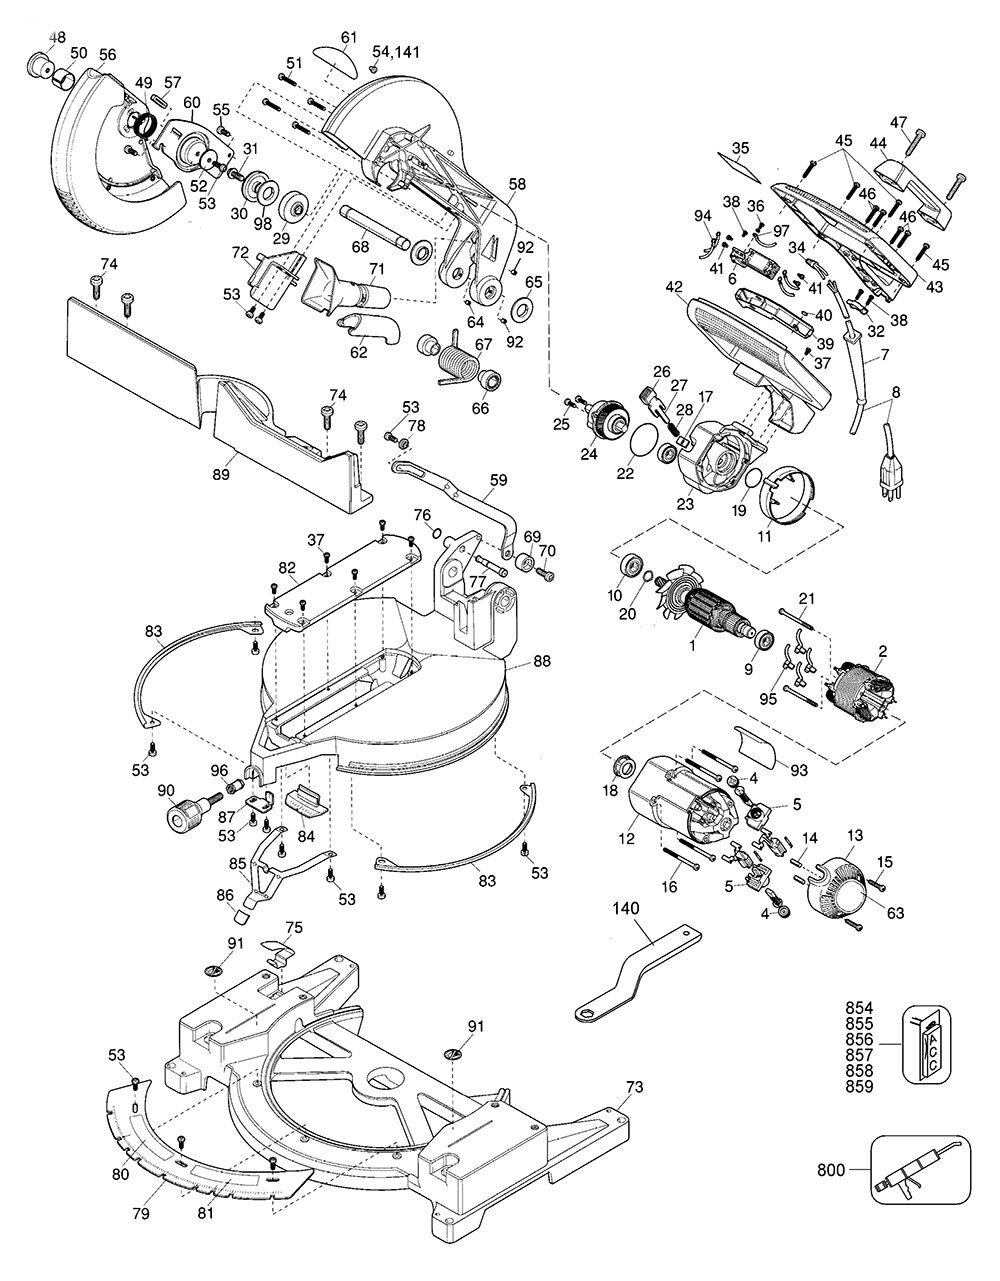 Diagram Of Meat Saw Parts together with Ford Escort Fuel Pump Wiring Diagram besides Master Cylinder Diagram Motor Repalcement Parts And also 6e2v60 furthermore Modine 9f0701090000 Explosion Proof Replacement Motor 115v. on electric motor diagram from the repalcement parts and